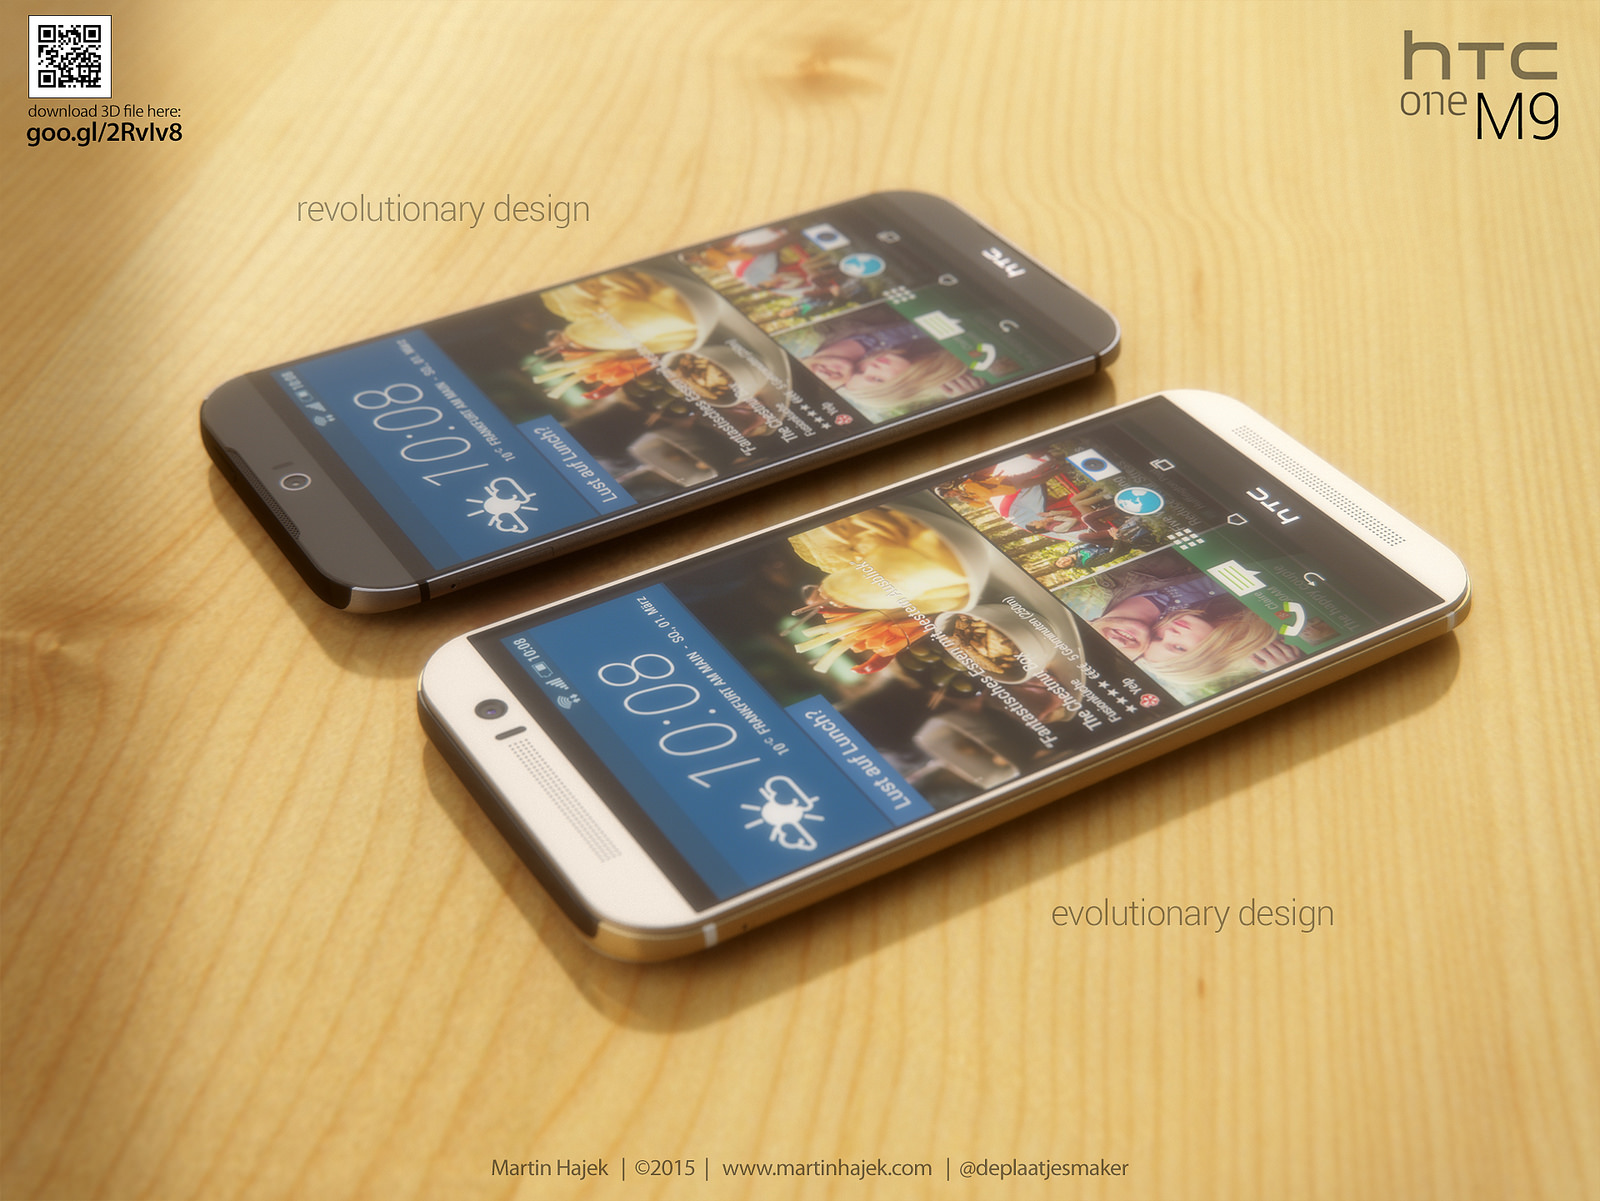 HTC-One-M9-comparativa-Martin-Hajek(11)